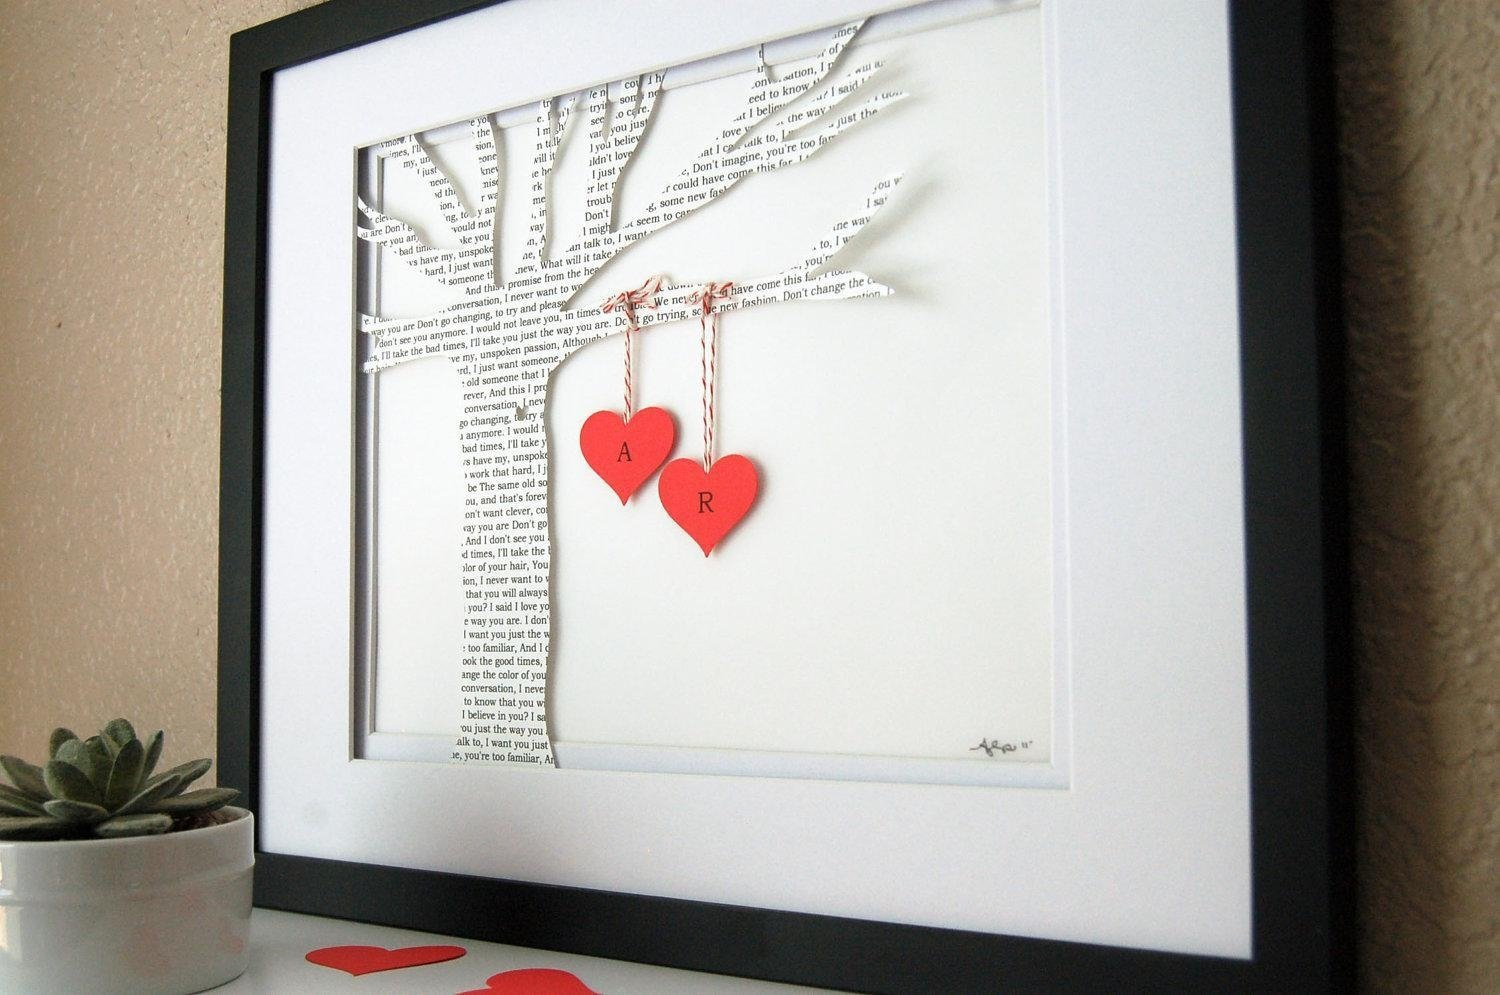 10 Elegant Good Ideas For Anniversary Gifts unusual creative anniversary gift ideas for her 2020